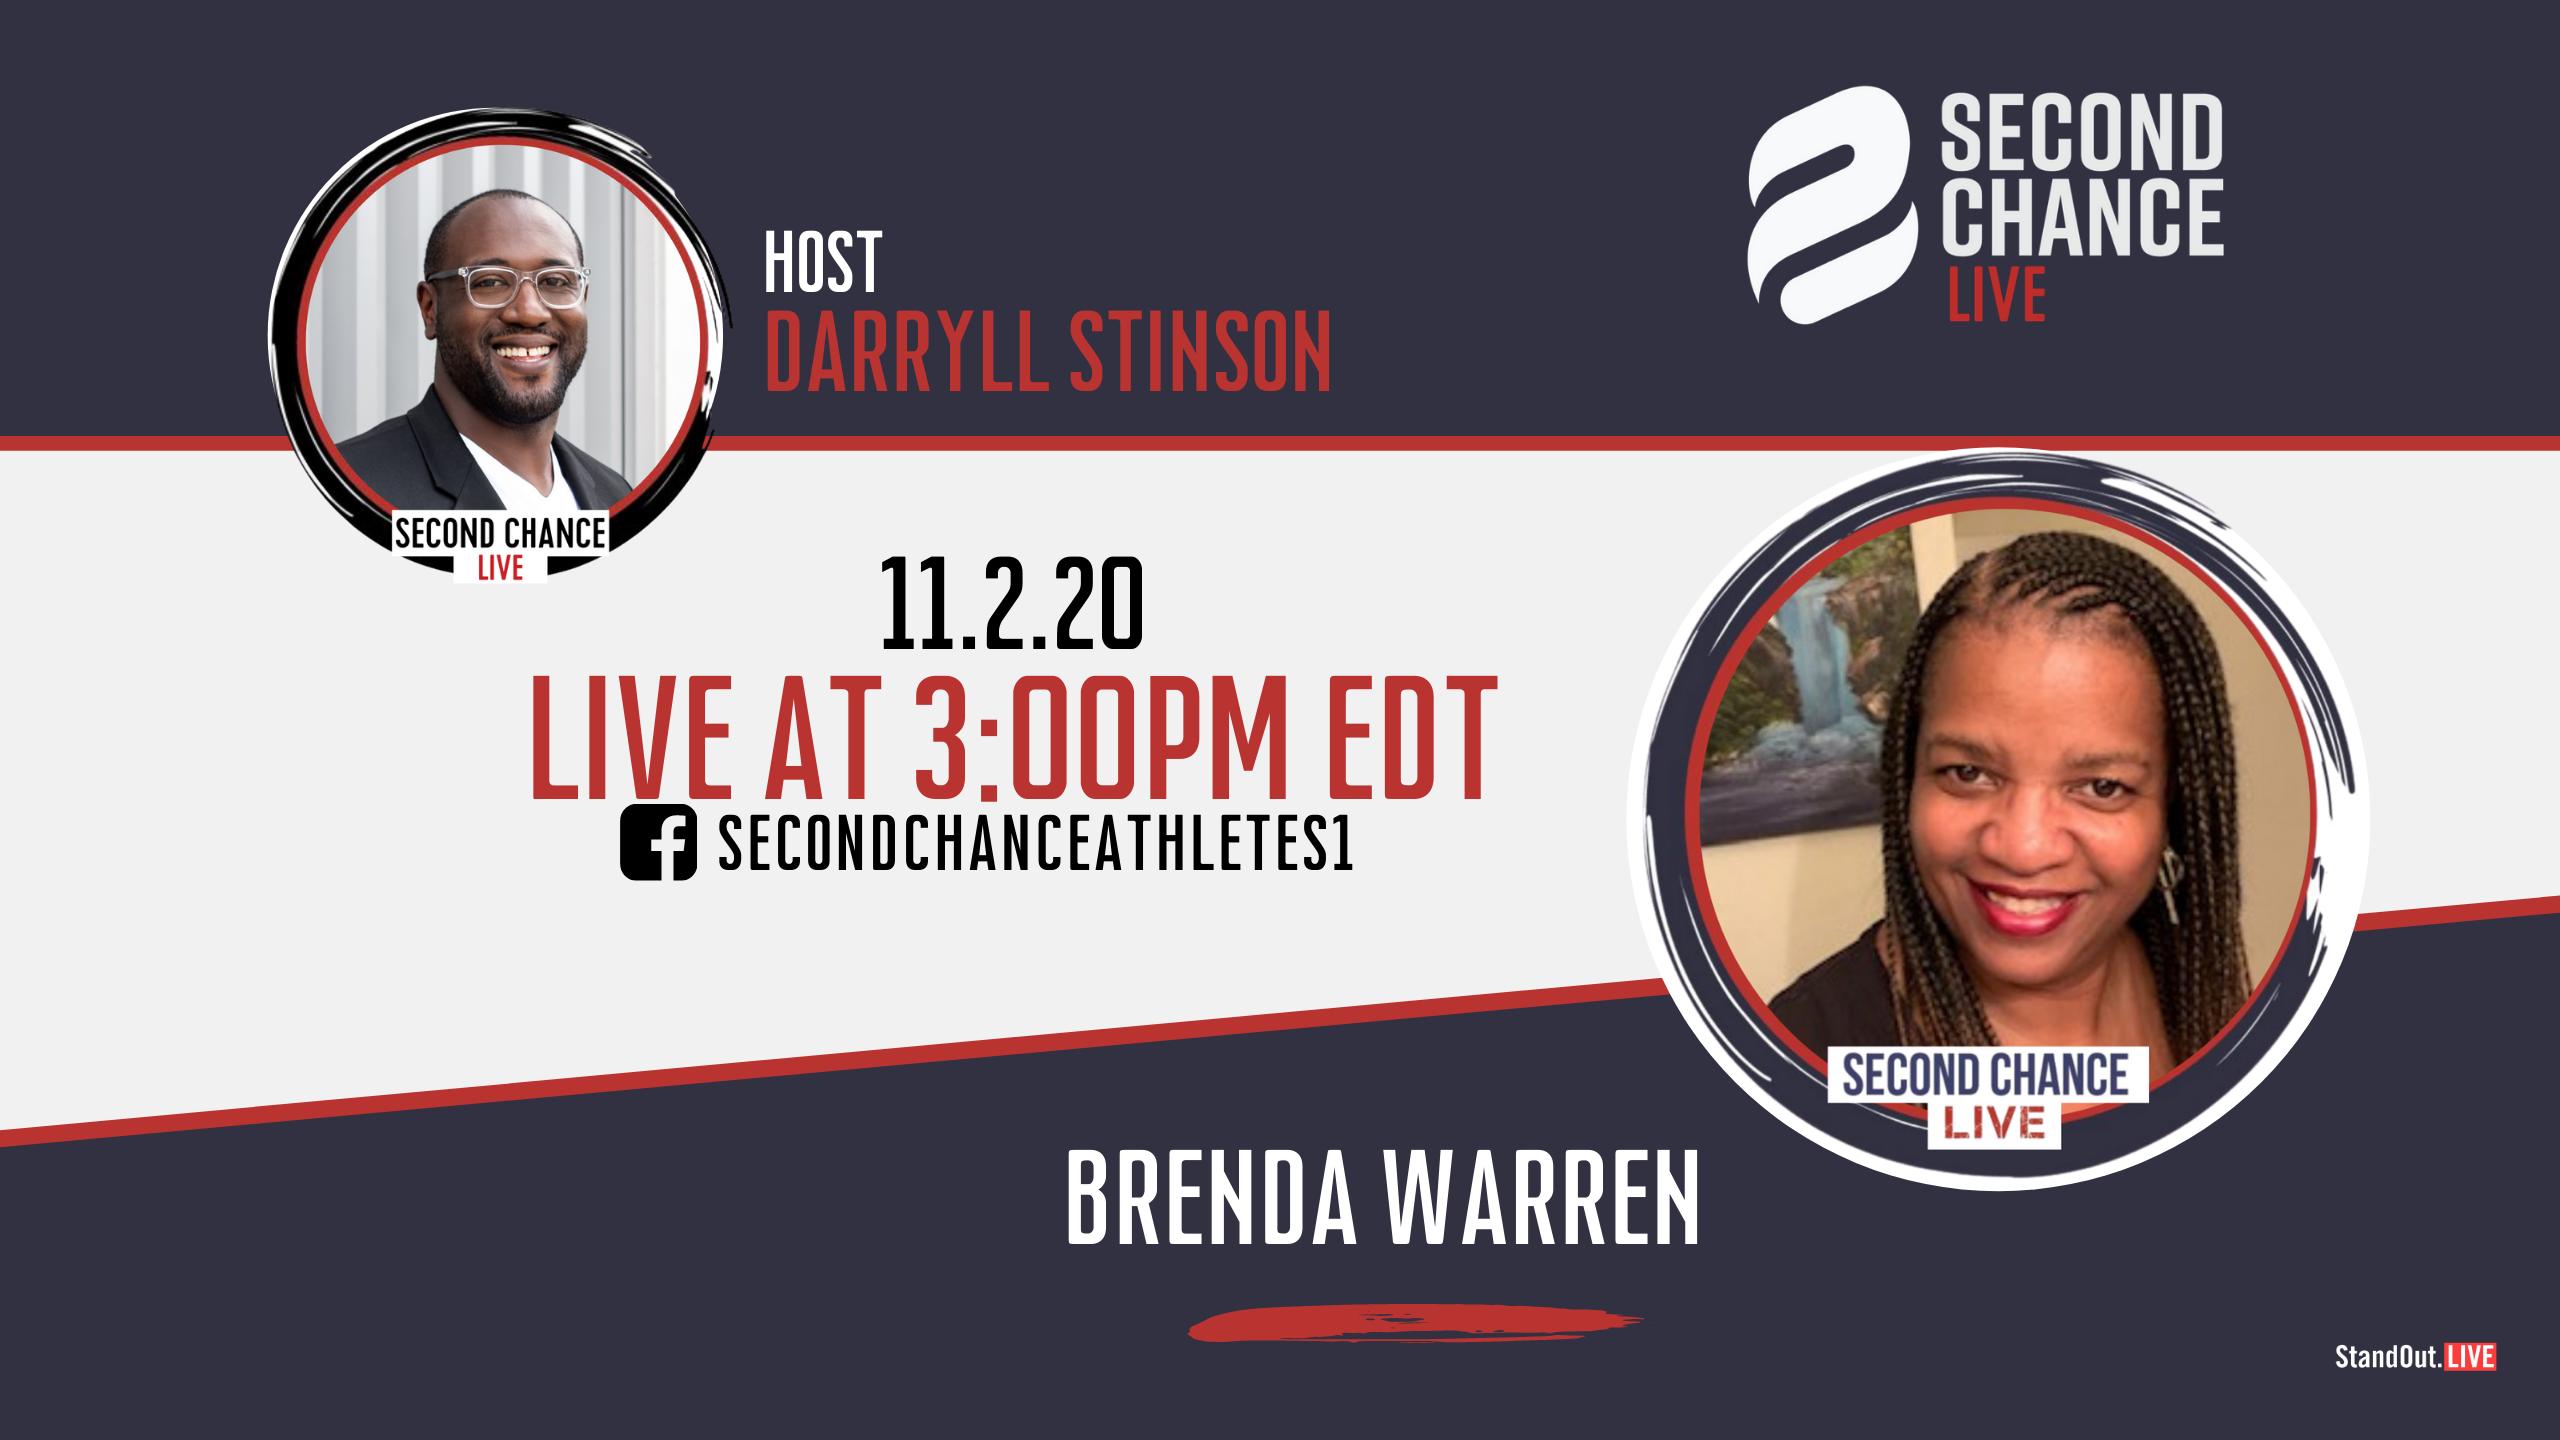 Second Chance LIVE -with Brenda Warren